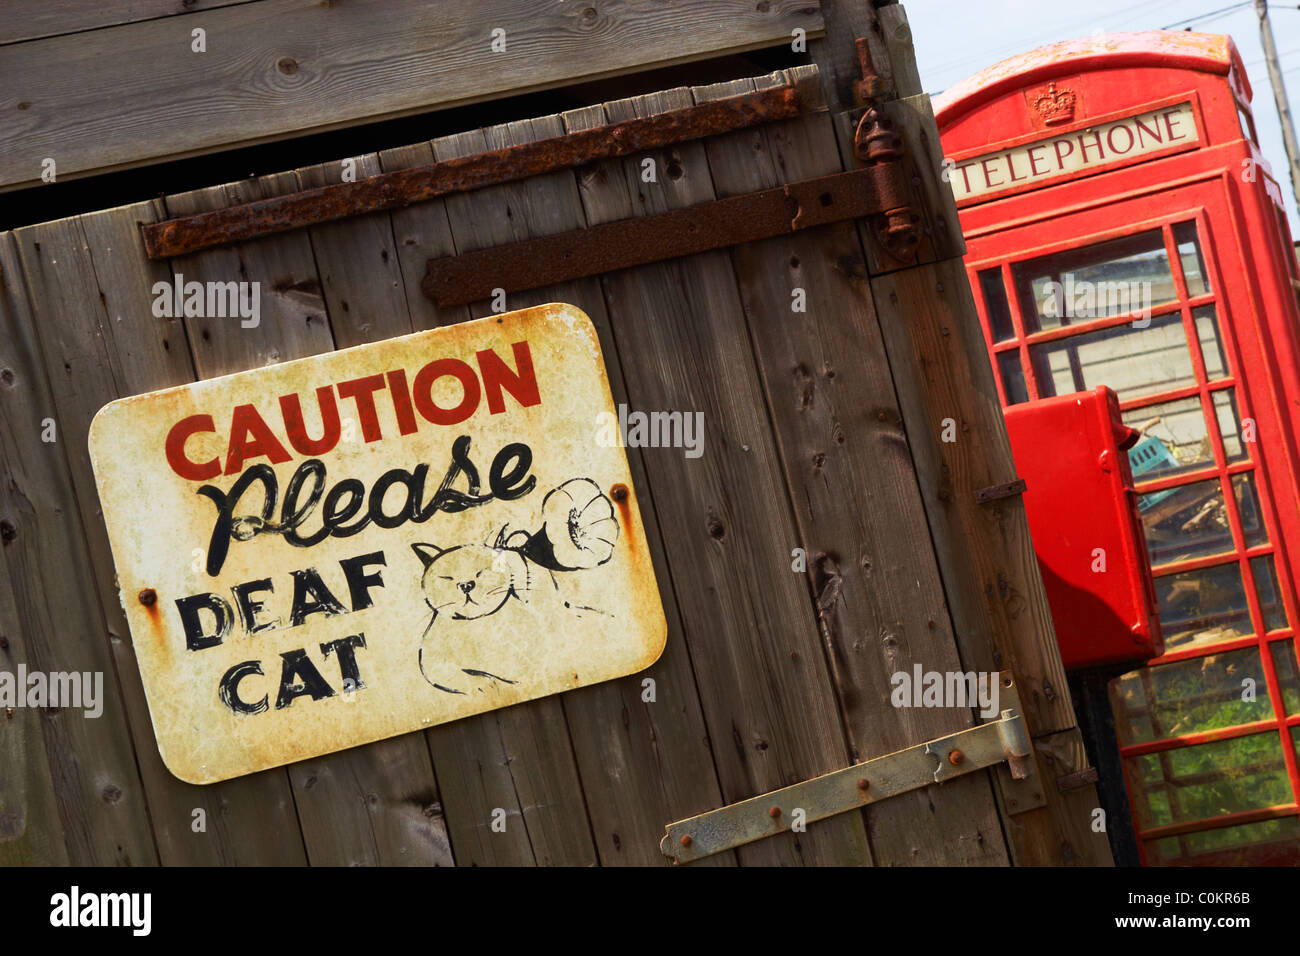 A sign warns of a deaf cat near a red telephone box and post box at Sennen, Cornwall, UK. - Stock Image